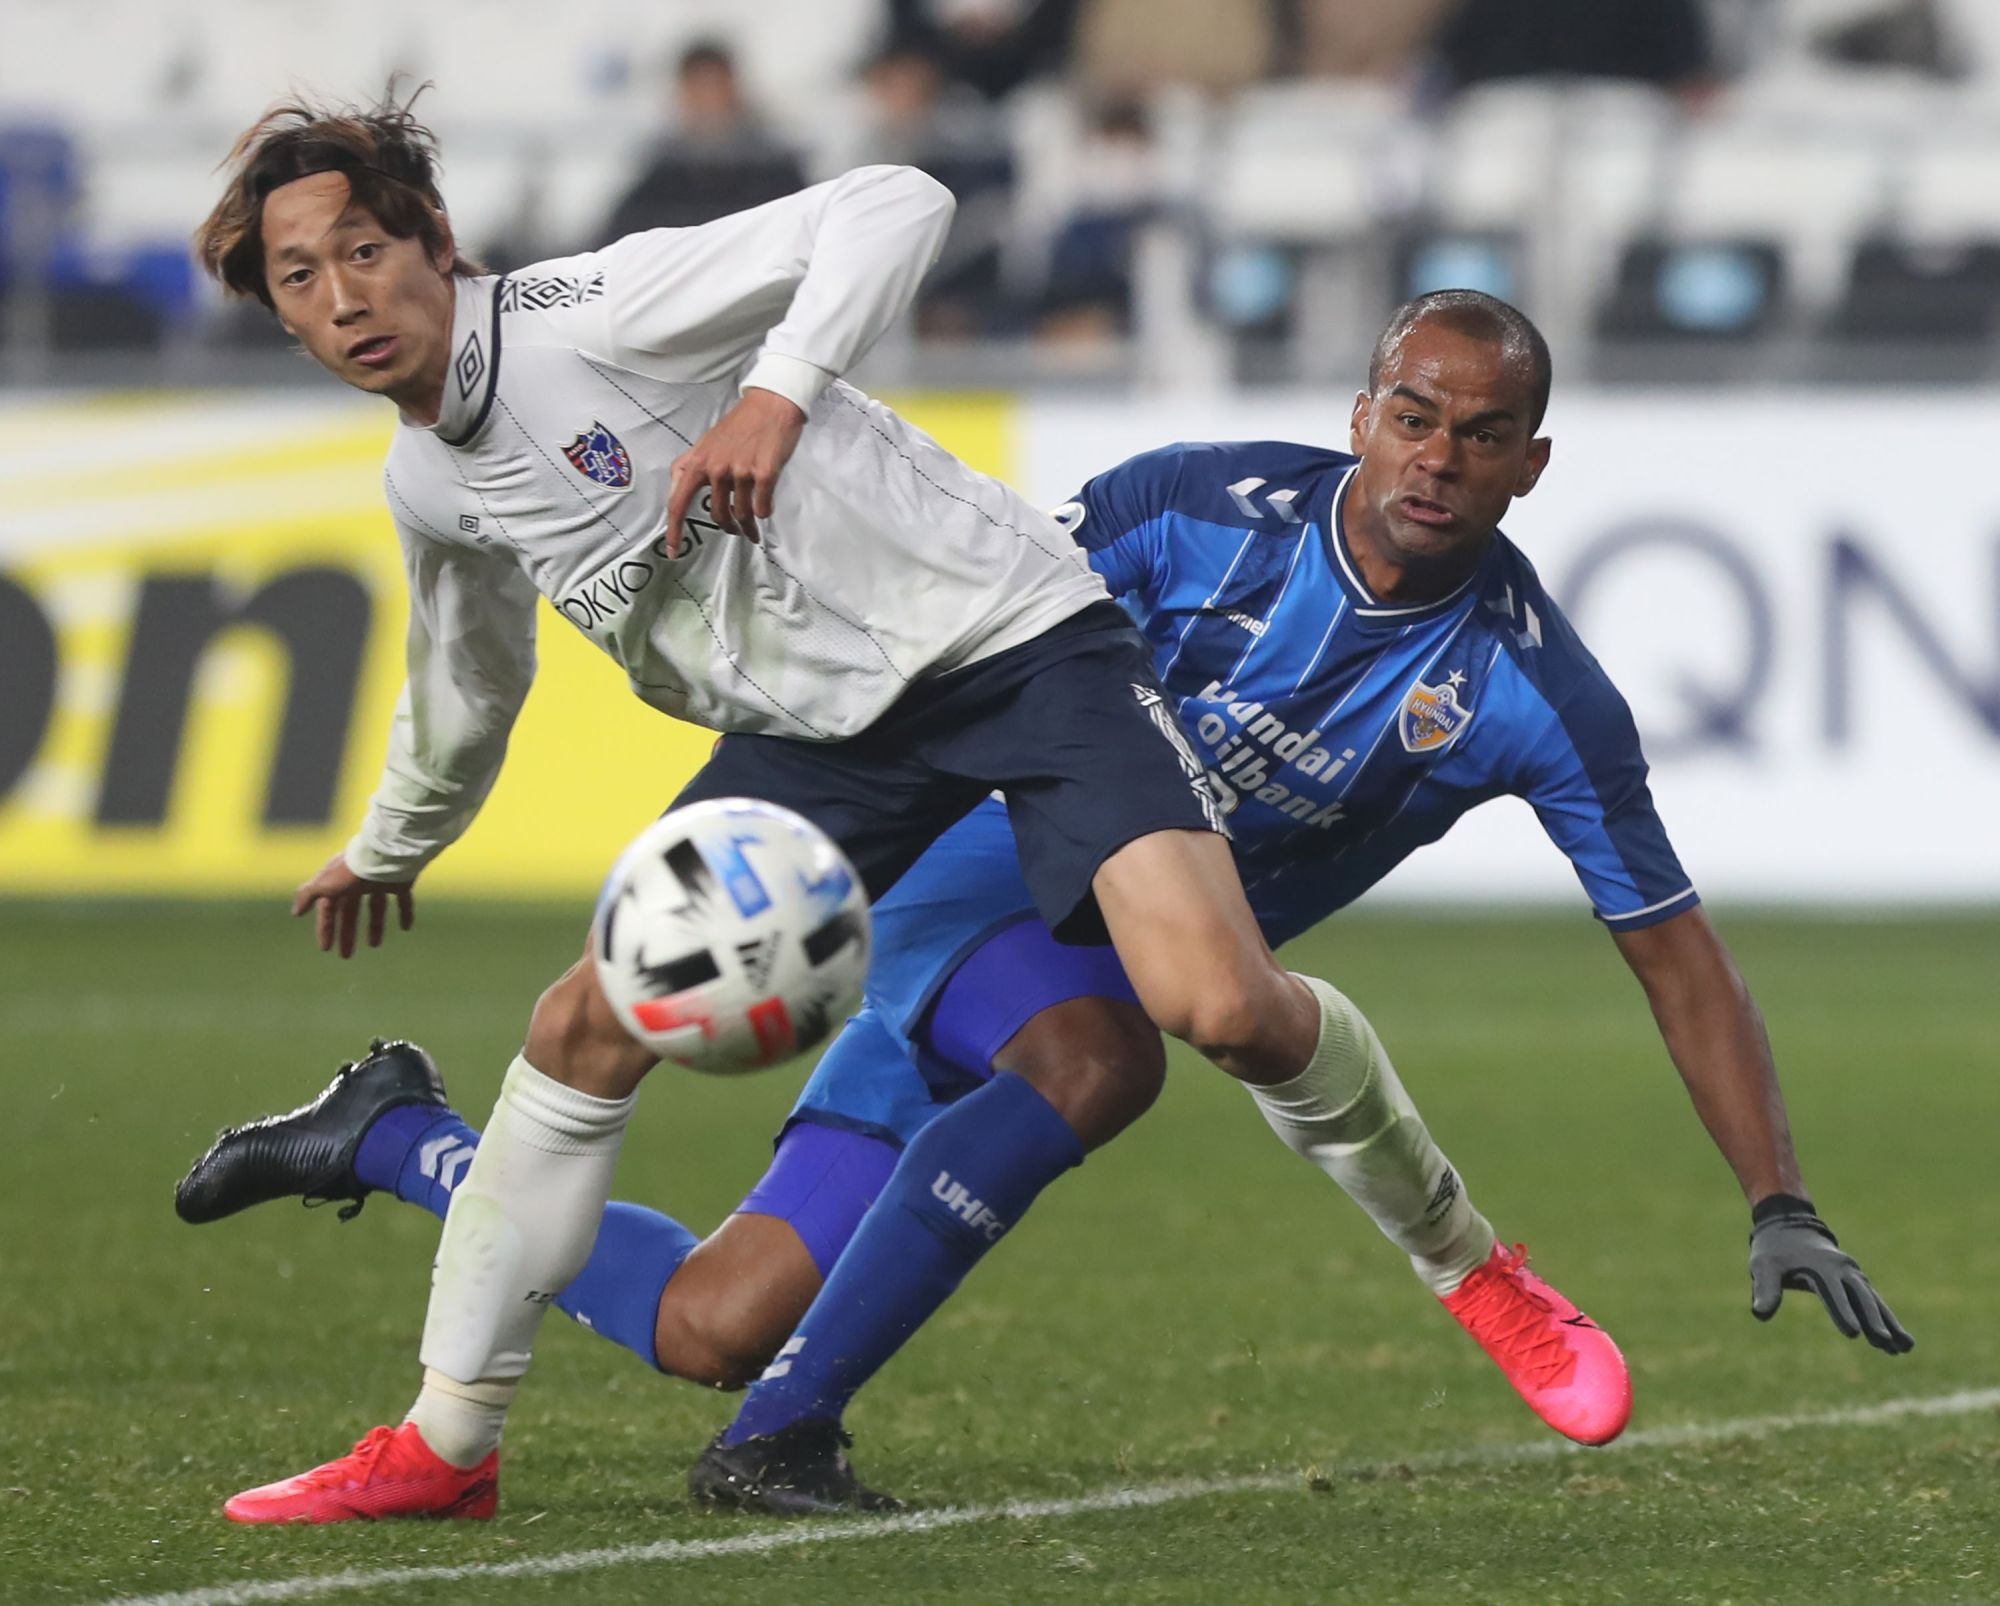 Tokyo's Sei Muroya (left) competes for the ball with Ulsan's Junior Negrao during an Asian Champions League group stage match on Tuesday in Ulsan, South Korea. | AFP-JIJI